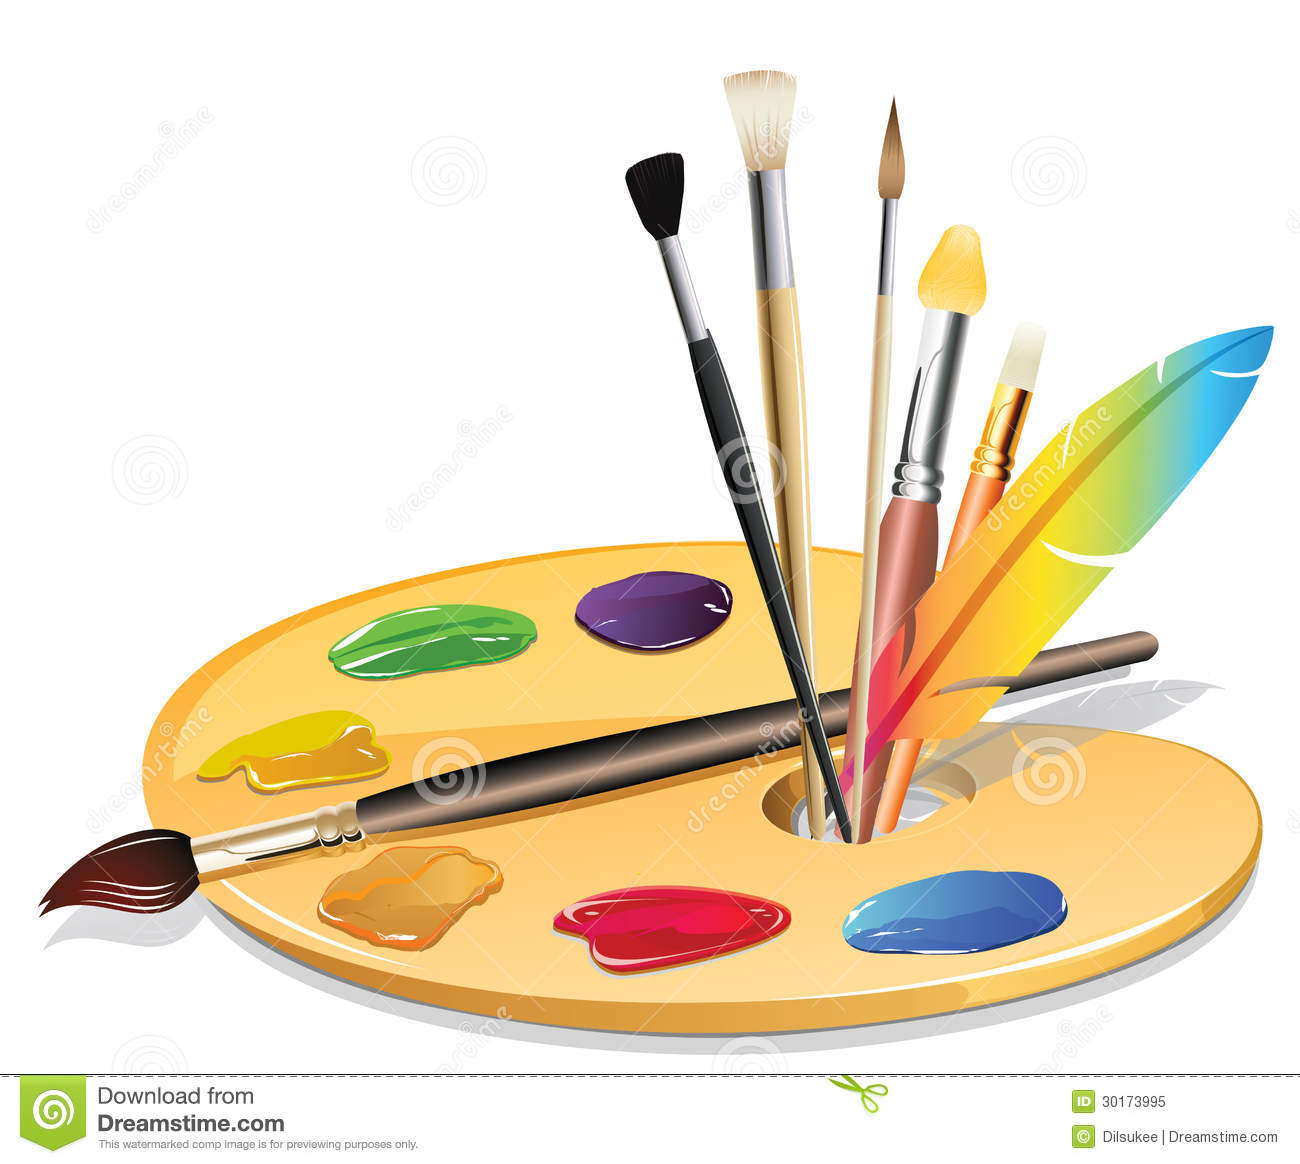 An Illustration Of Paintbrushes And A Pallet